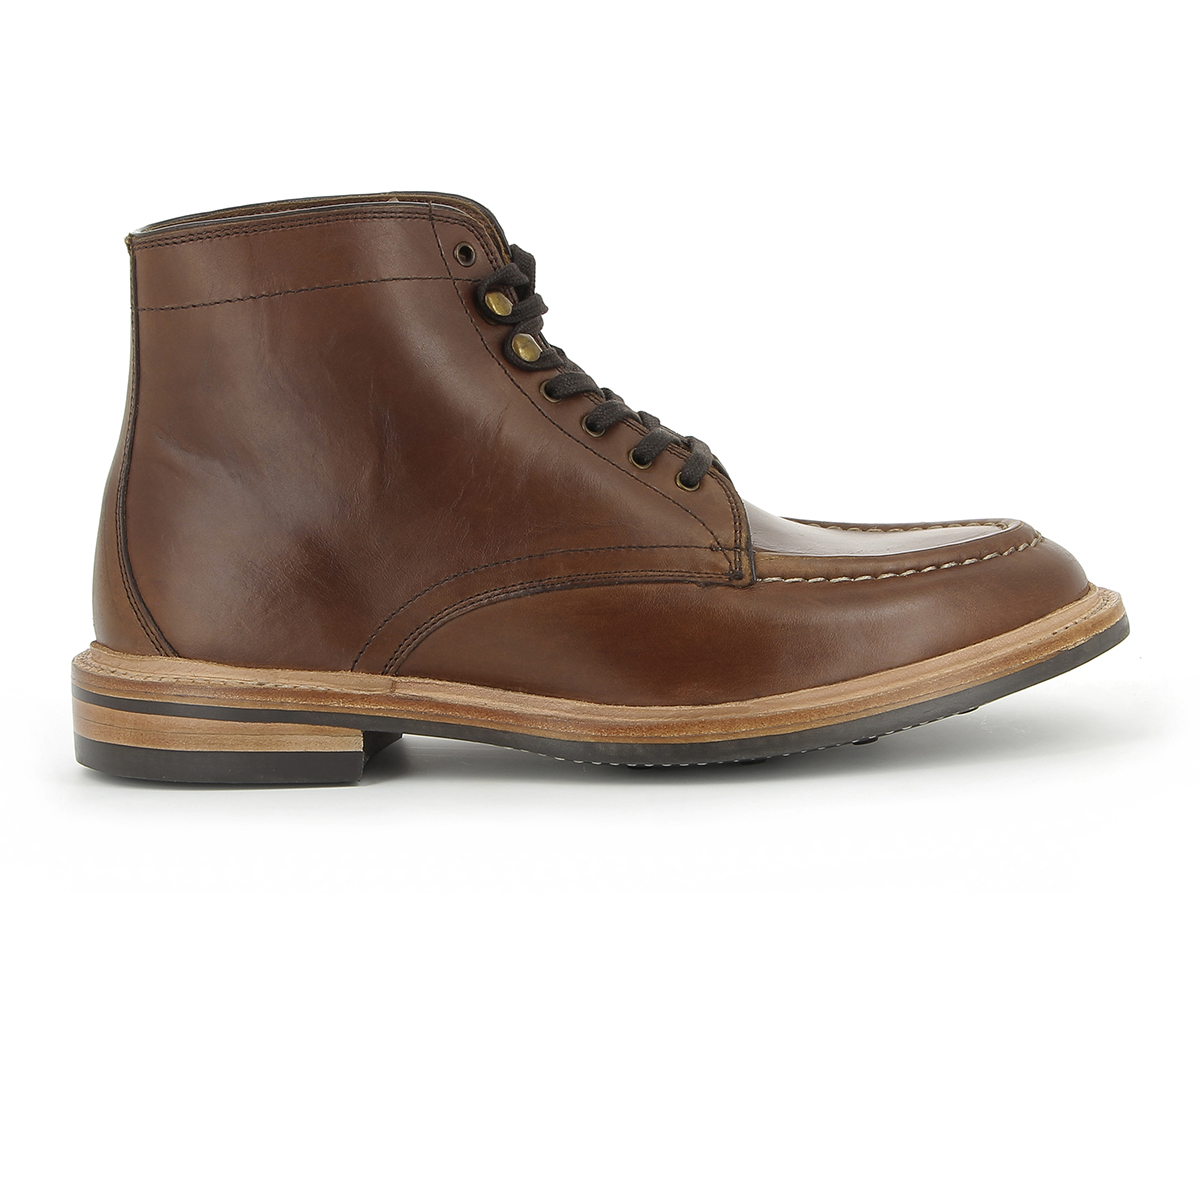 Monogram Apron Pull Up Boot Dark Brown Leather